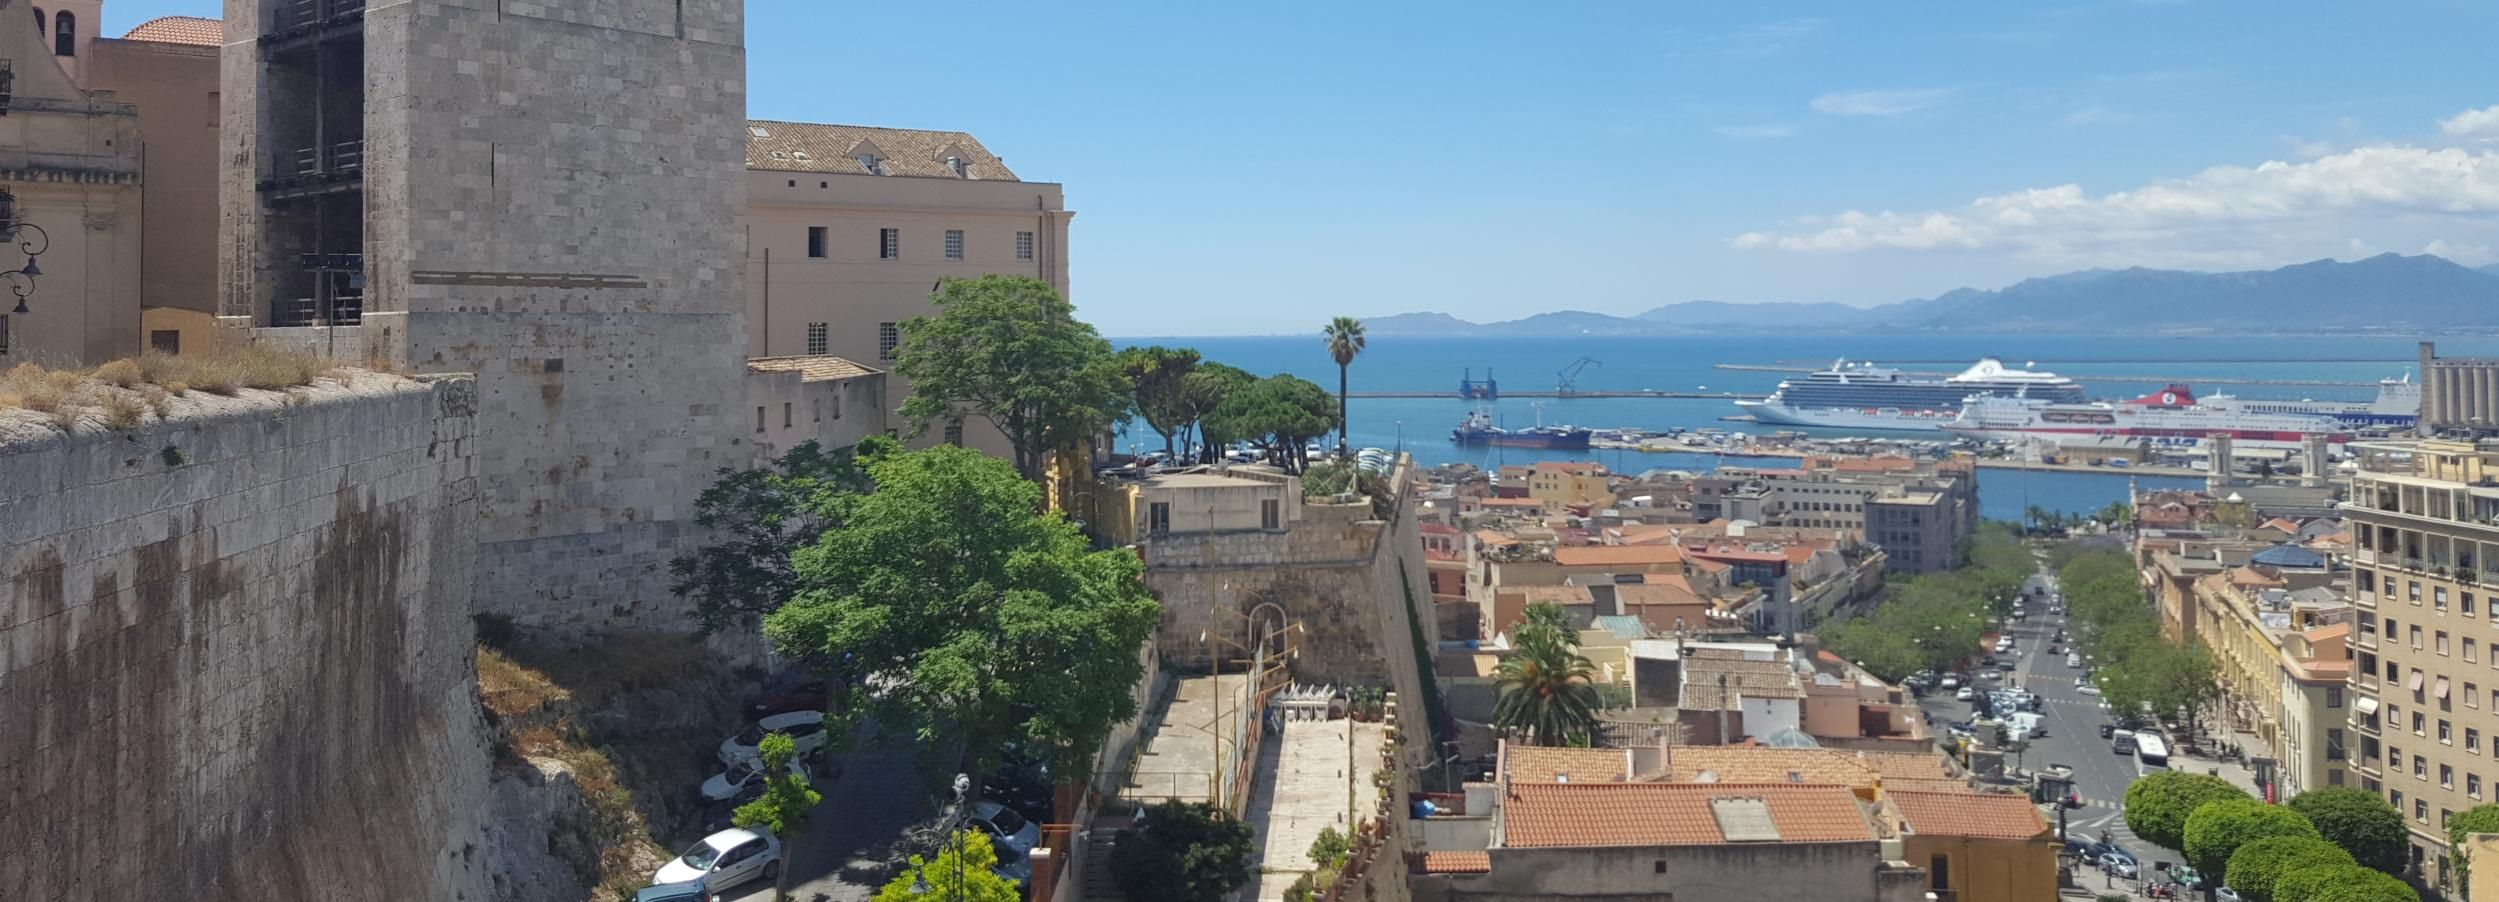 Top Sights of Cagliari Tour